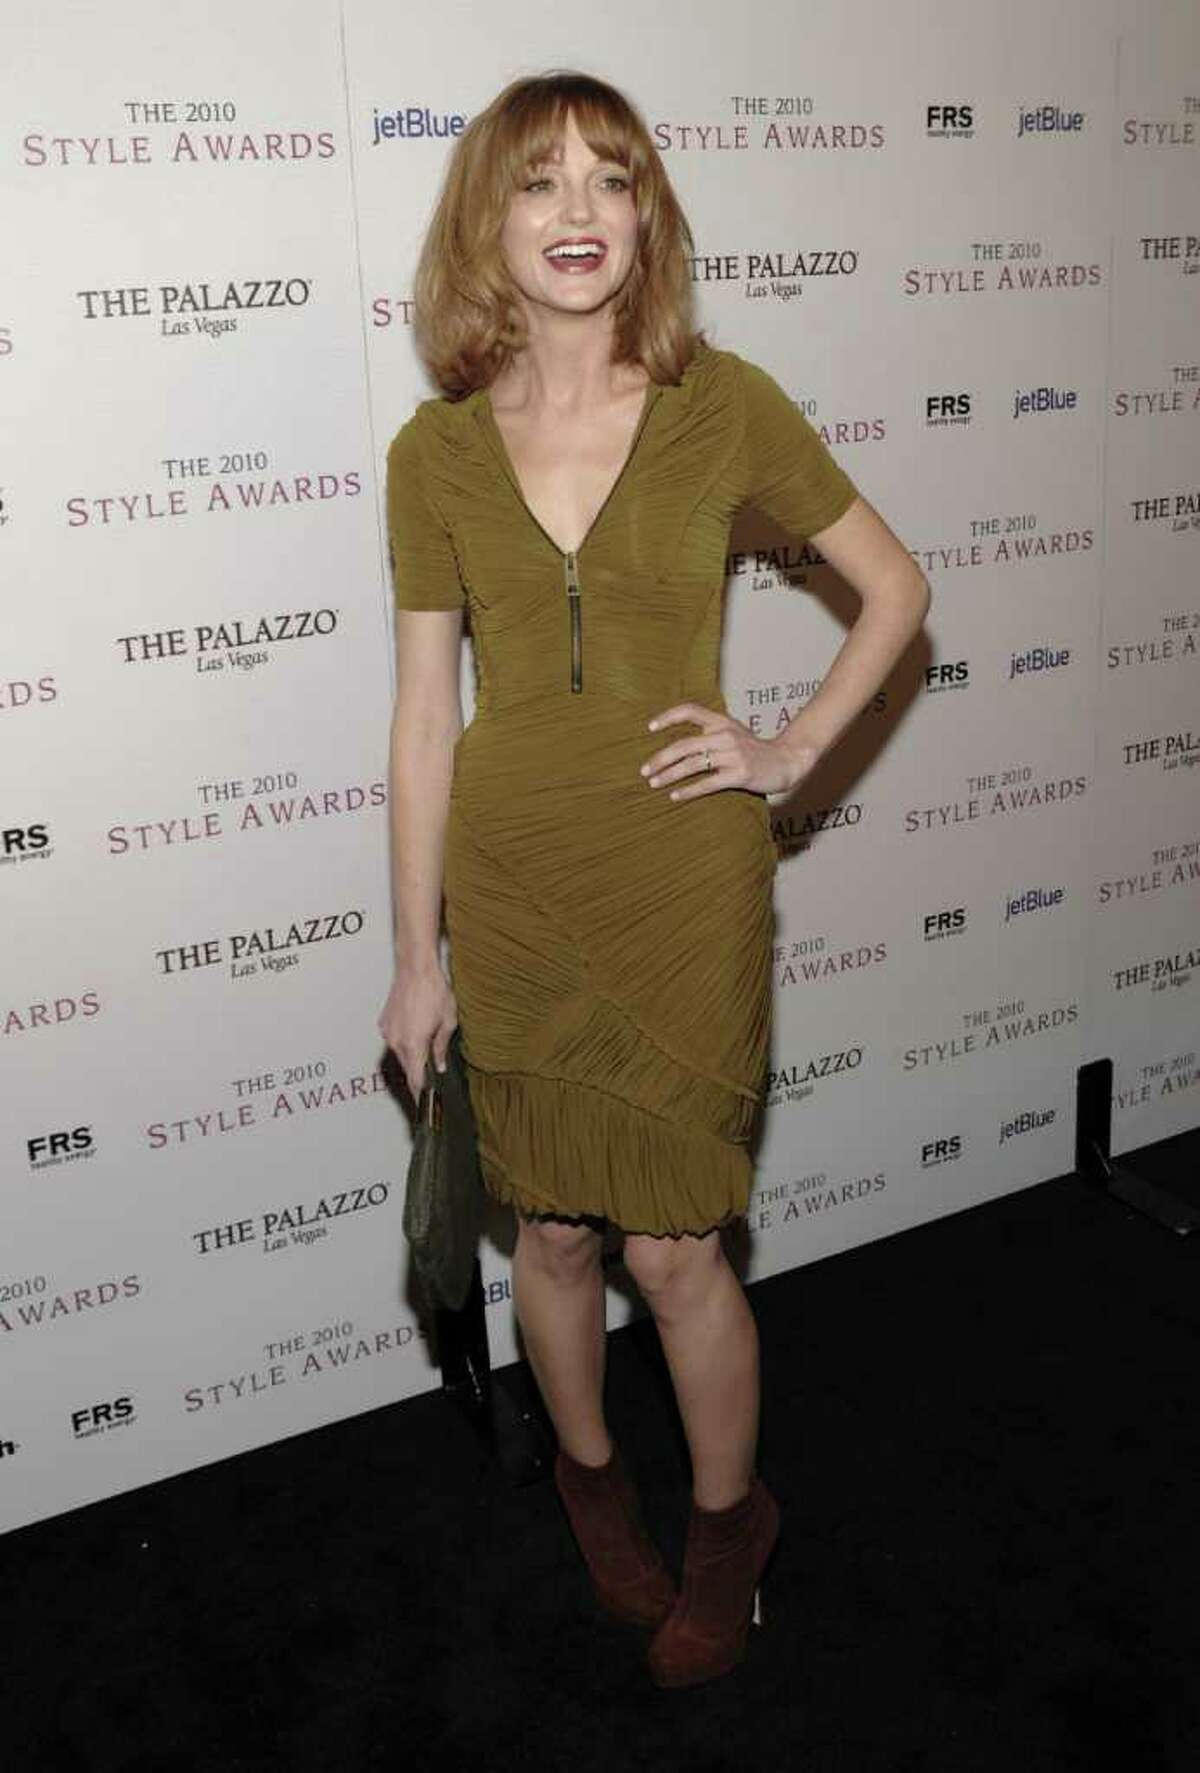 Actress Jayma Mays arrives at the 2010 Hollywood Style Awards in Los Angeles on Sunday, Dec. 12, 2010. (AP Photo/Dan Steinberg)